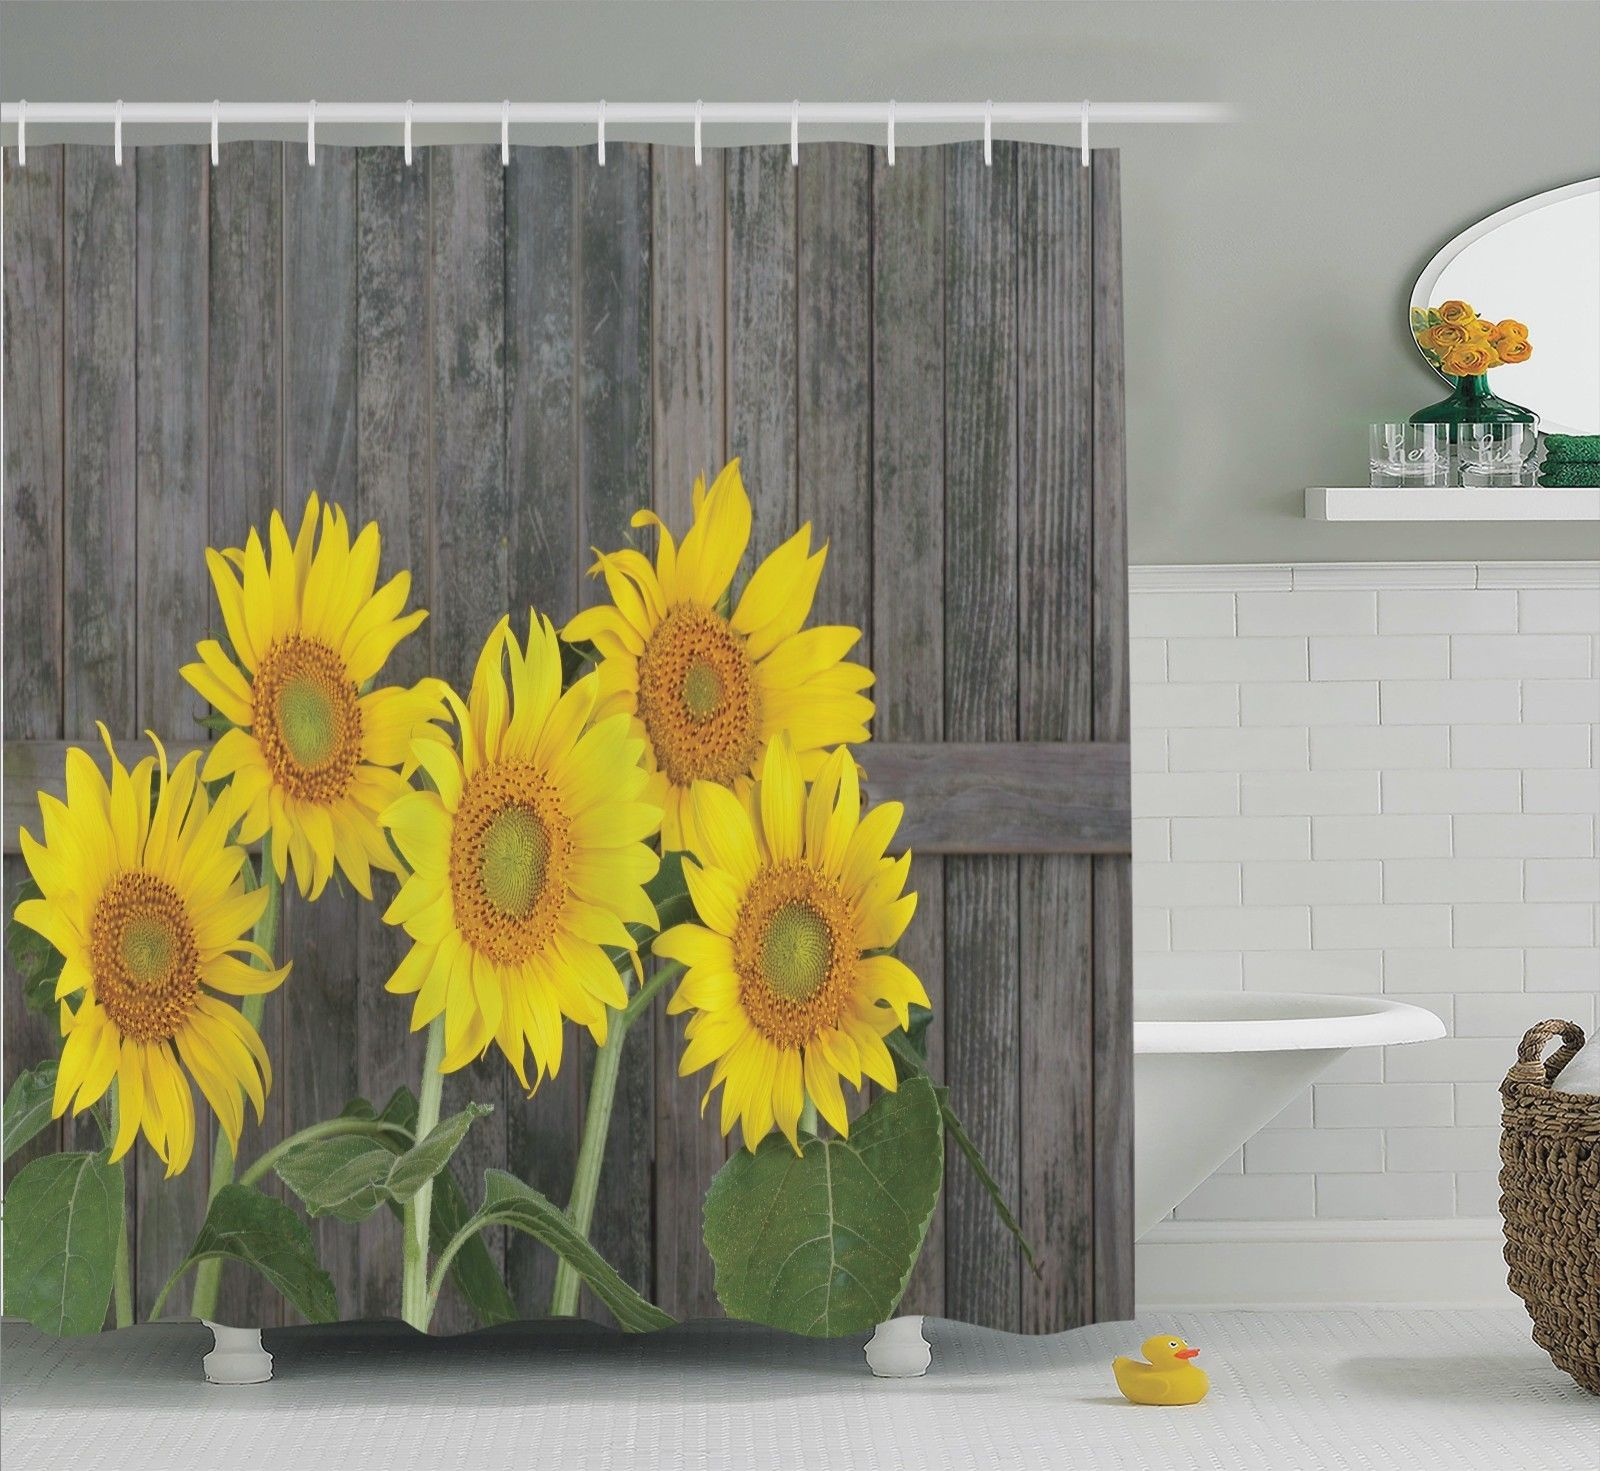 Sunflower Decor Shower Curtain Set Helianthus Sunflowers